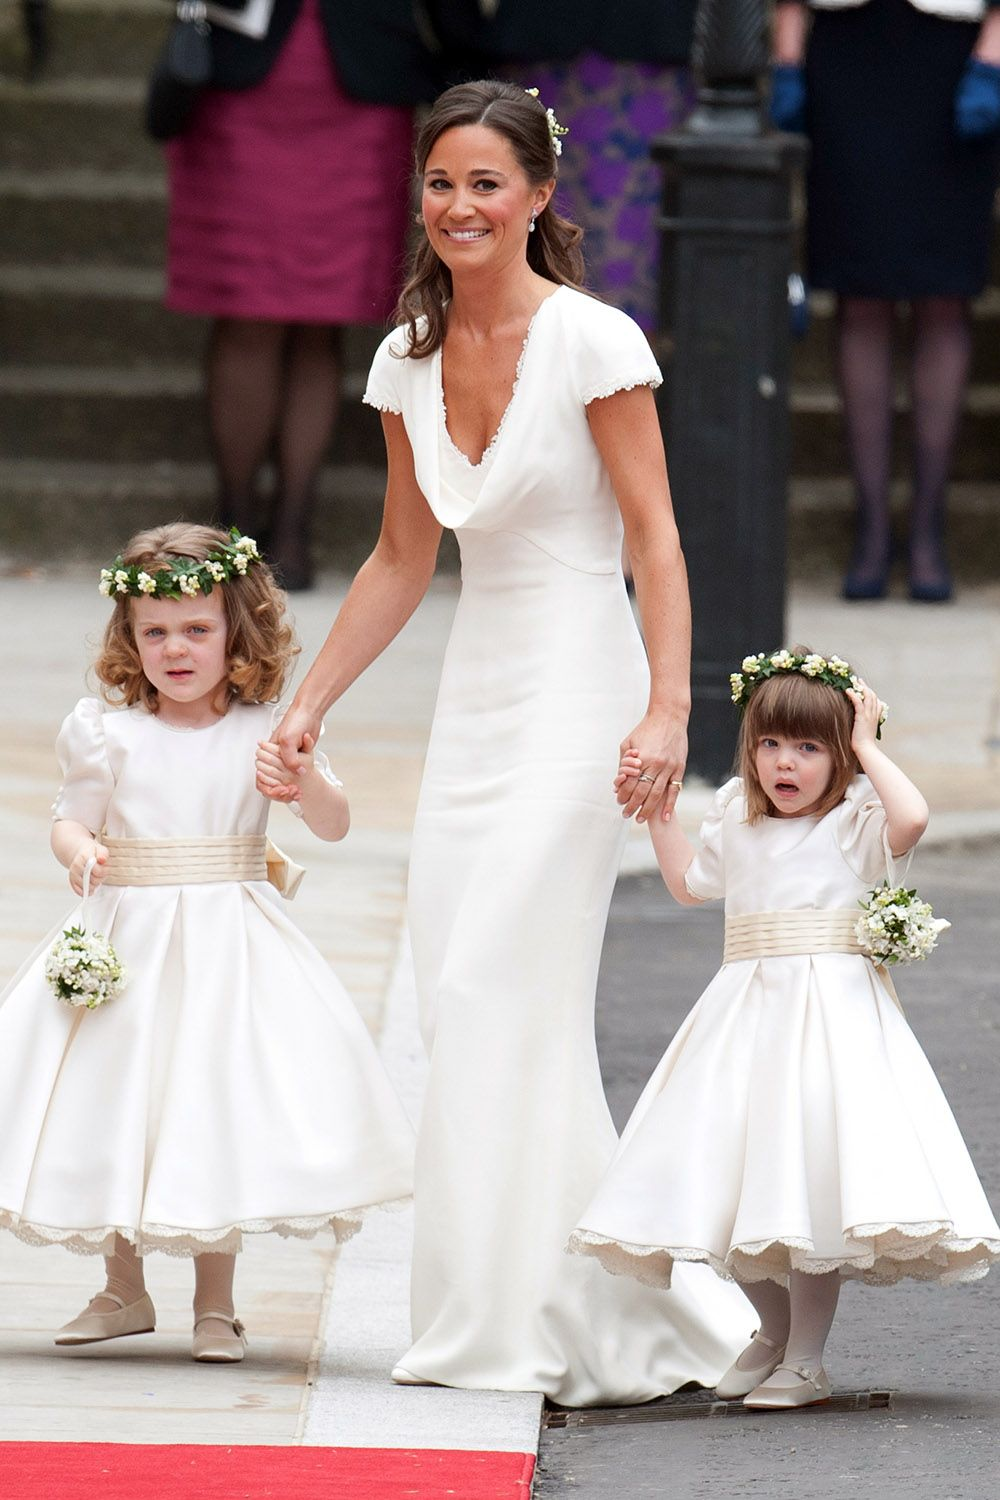 Kate Middleton and Prince William Wedding Photos - Royal Wedding ...